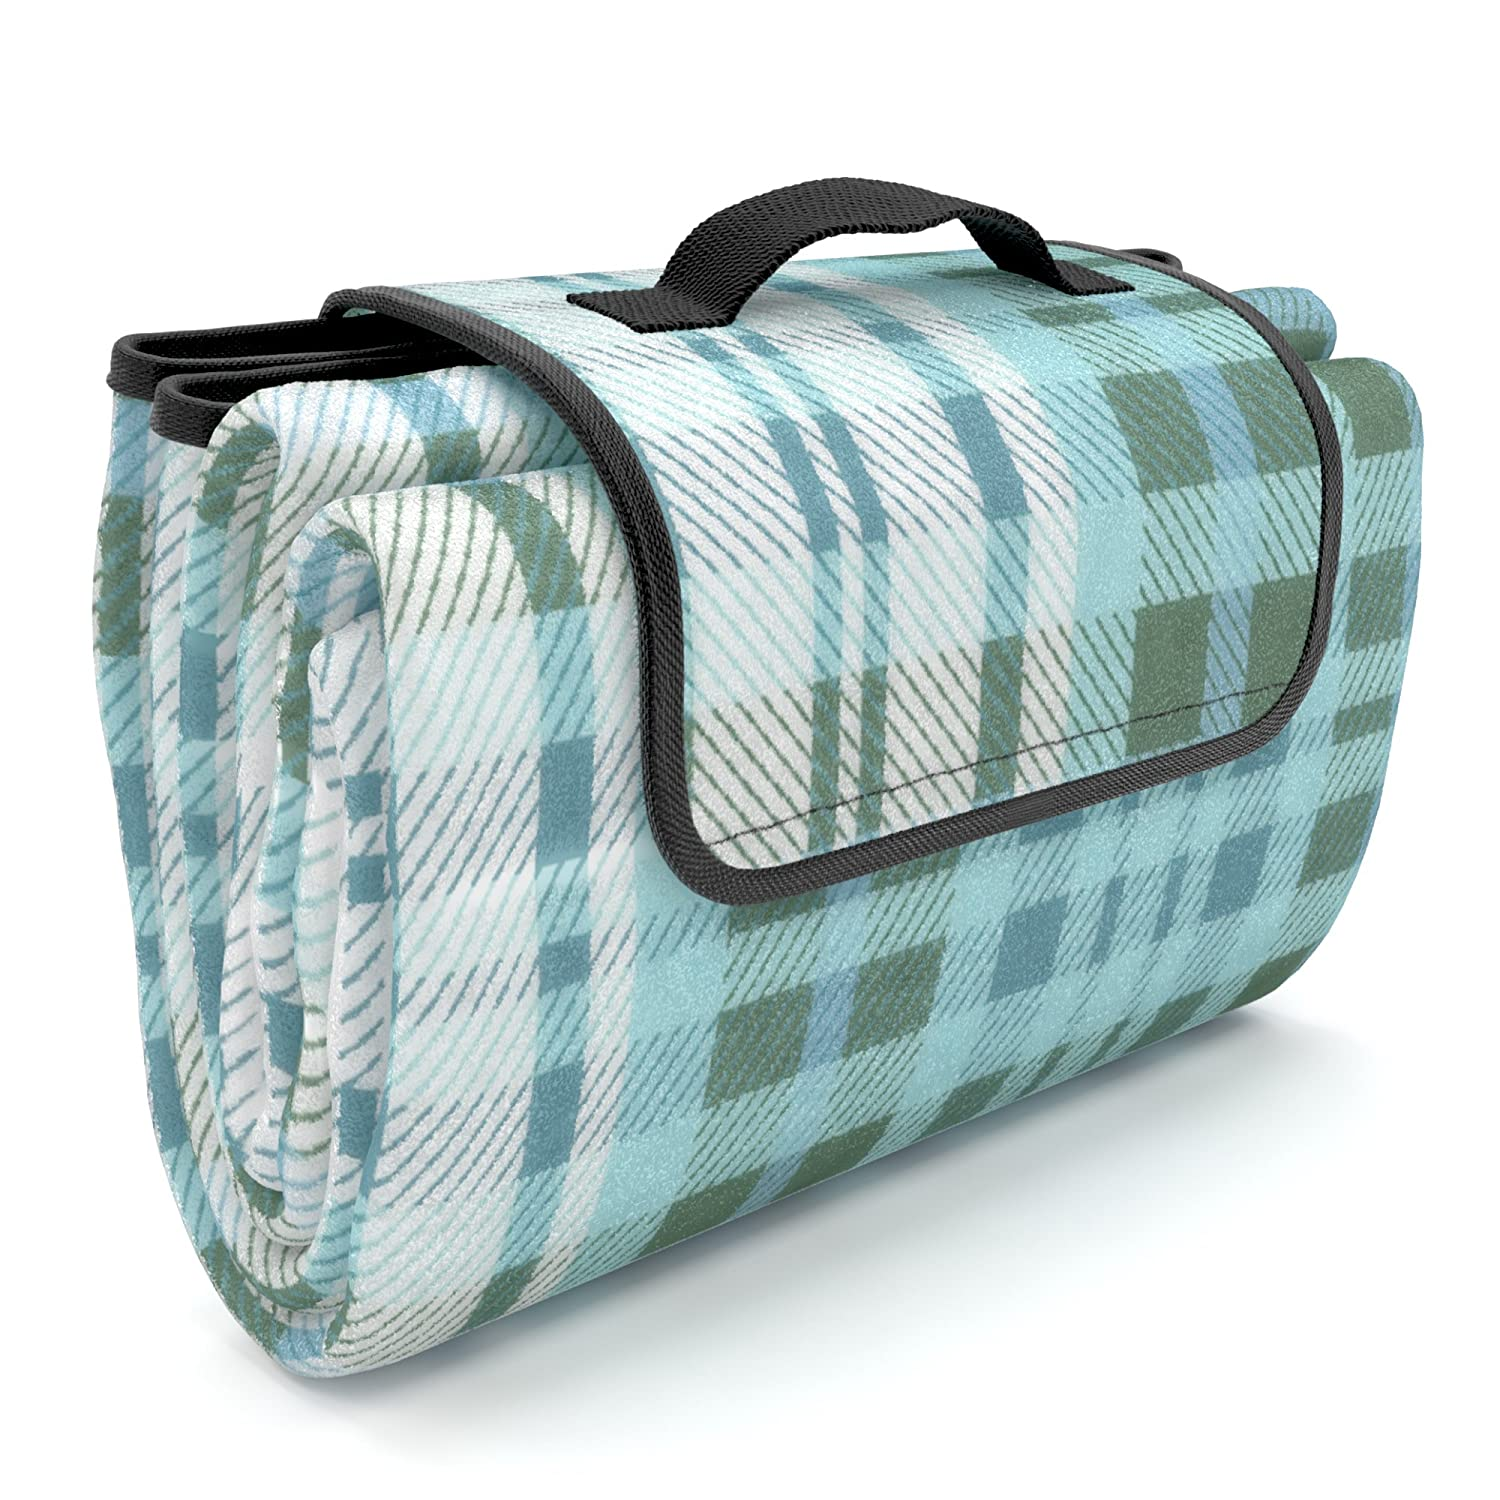 Large Beach Blankets: Extra Large Picnic Blanket Waterproof Foldable Beach